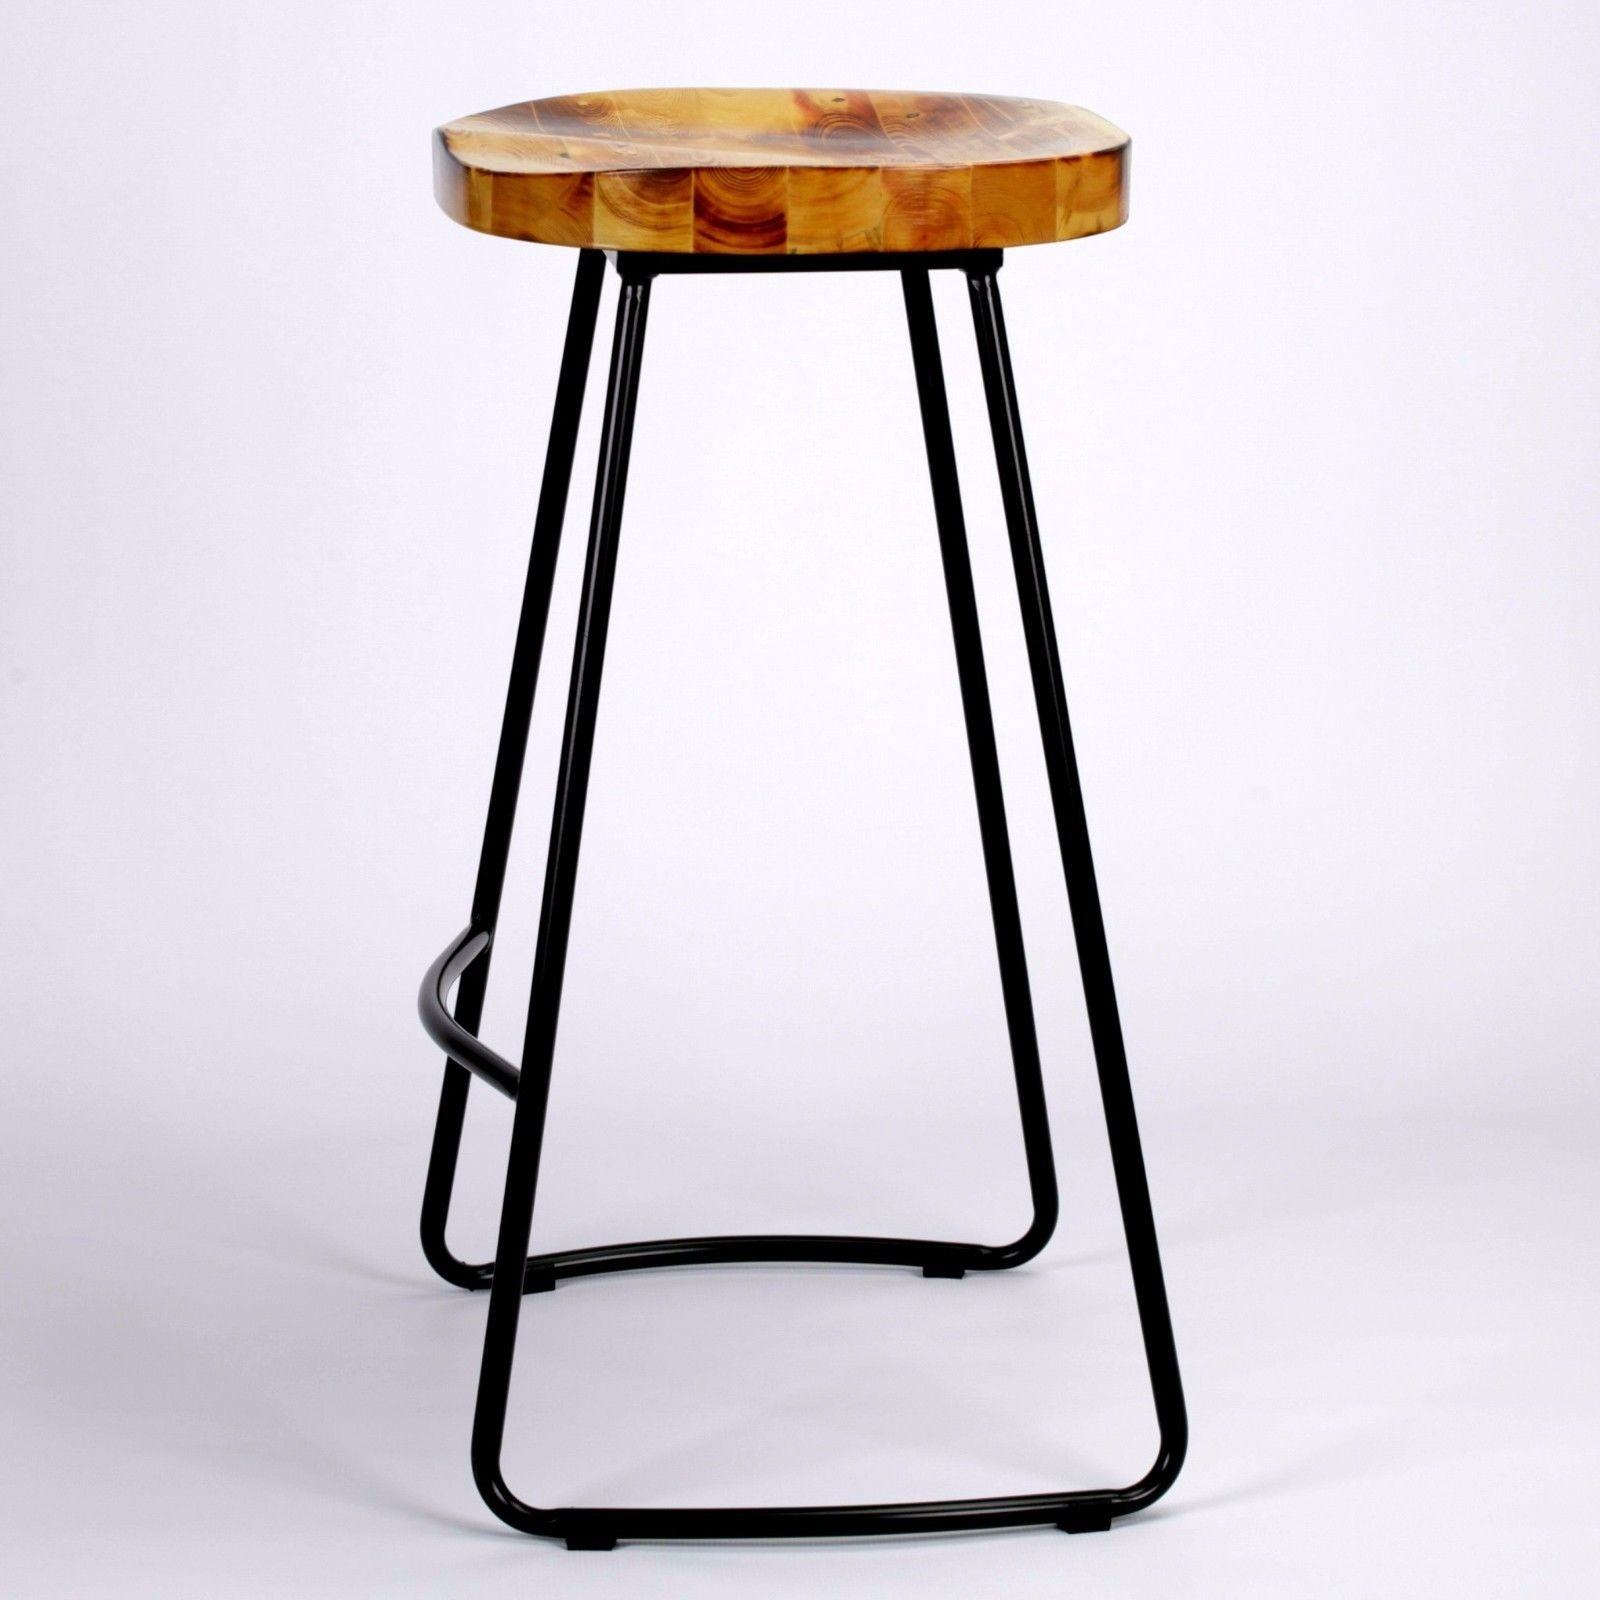 Wood And Metal Bar Stools Industrial Tractor Seat Style Metal Bar Stool Furniture